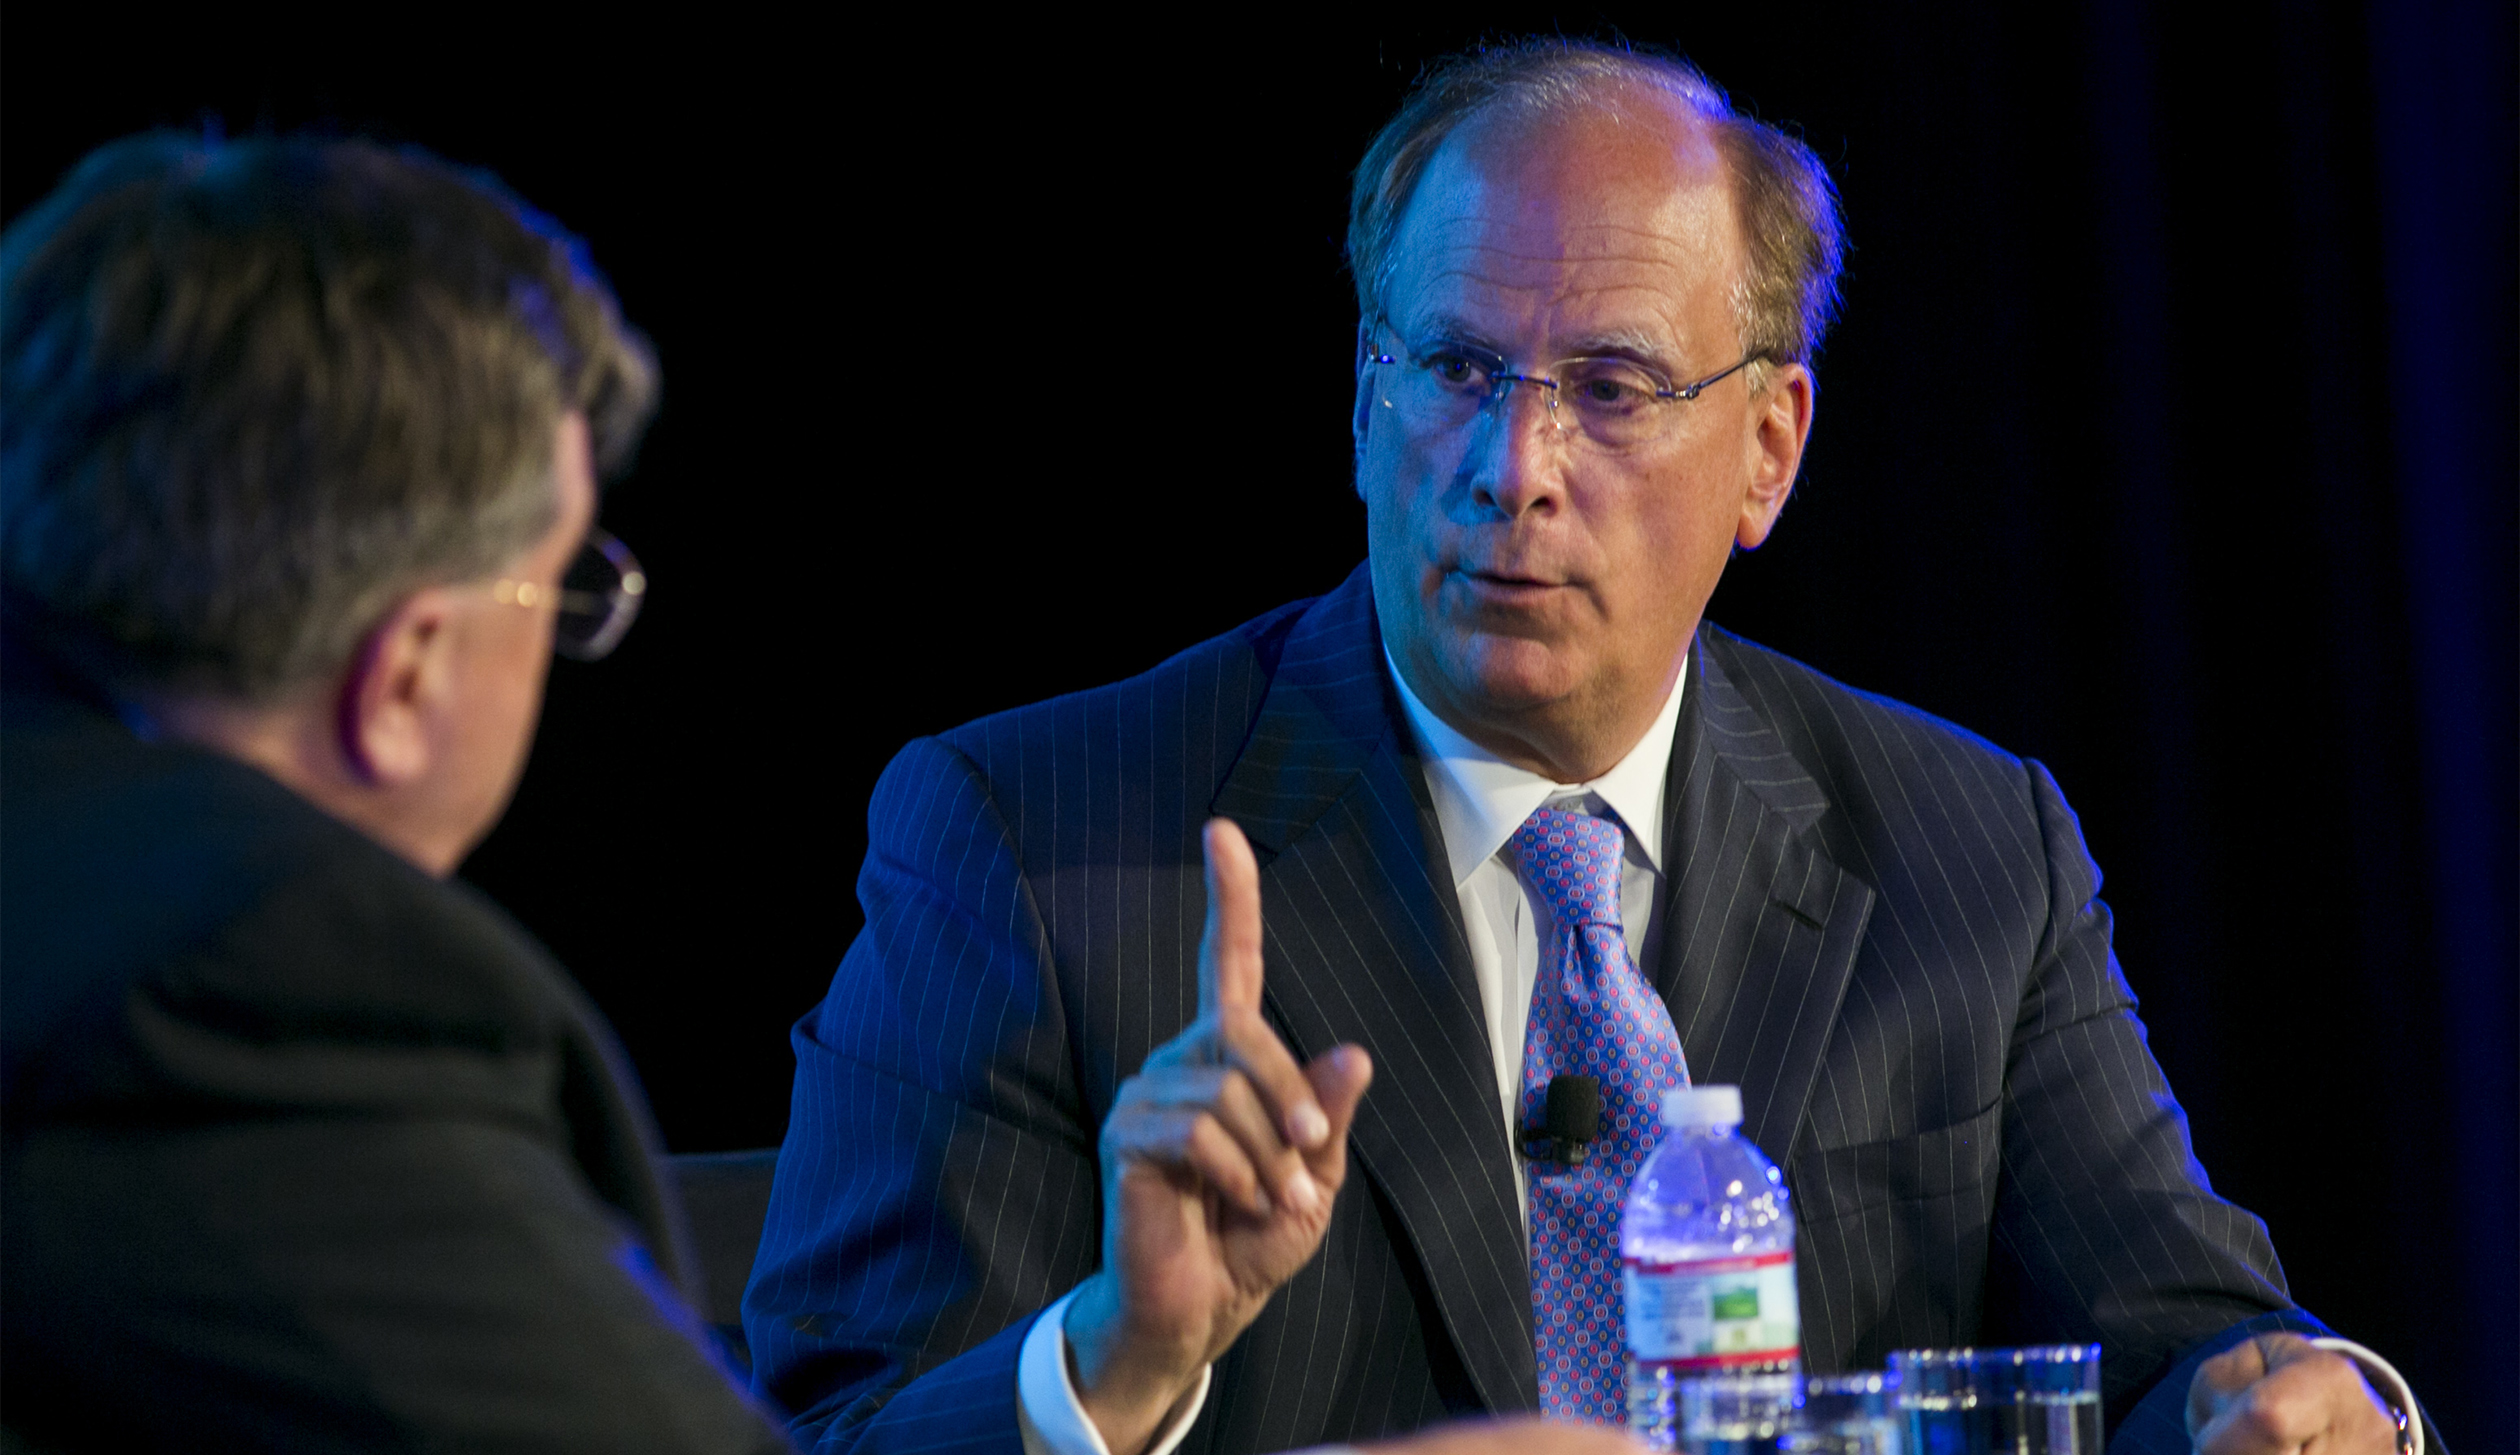 DC: BlackRock CEO Laurence Fink